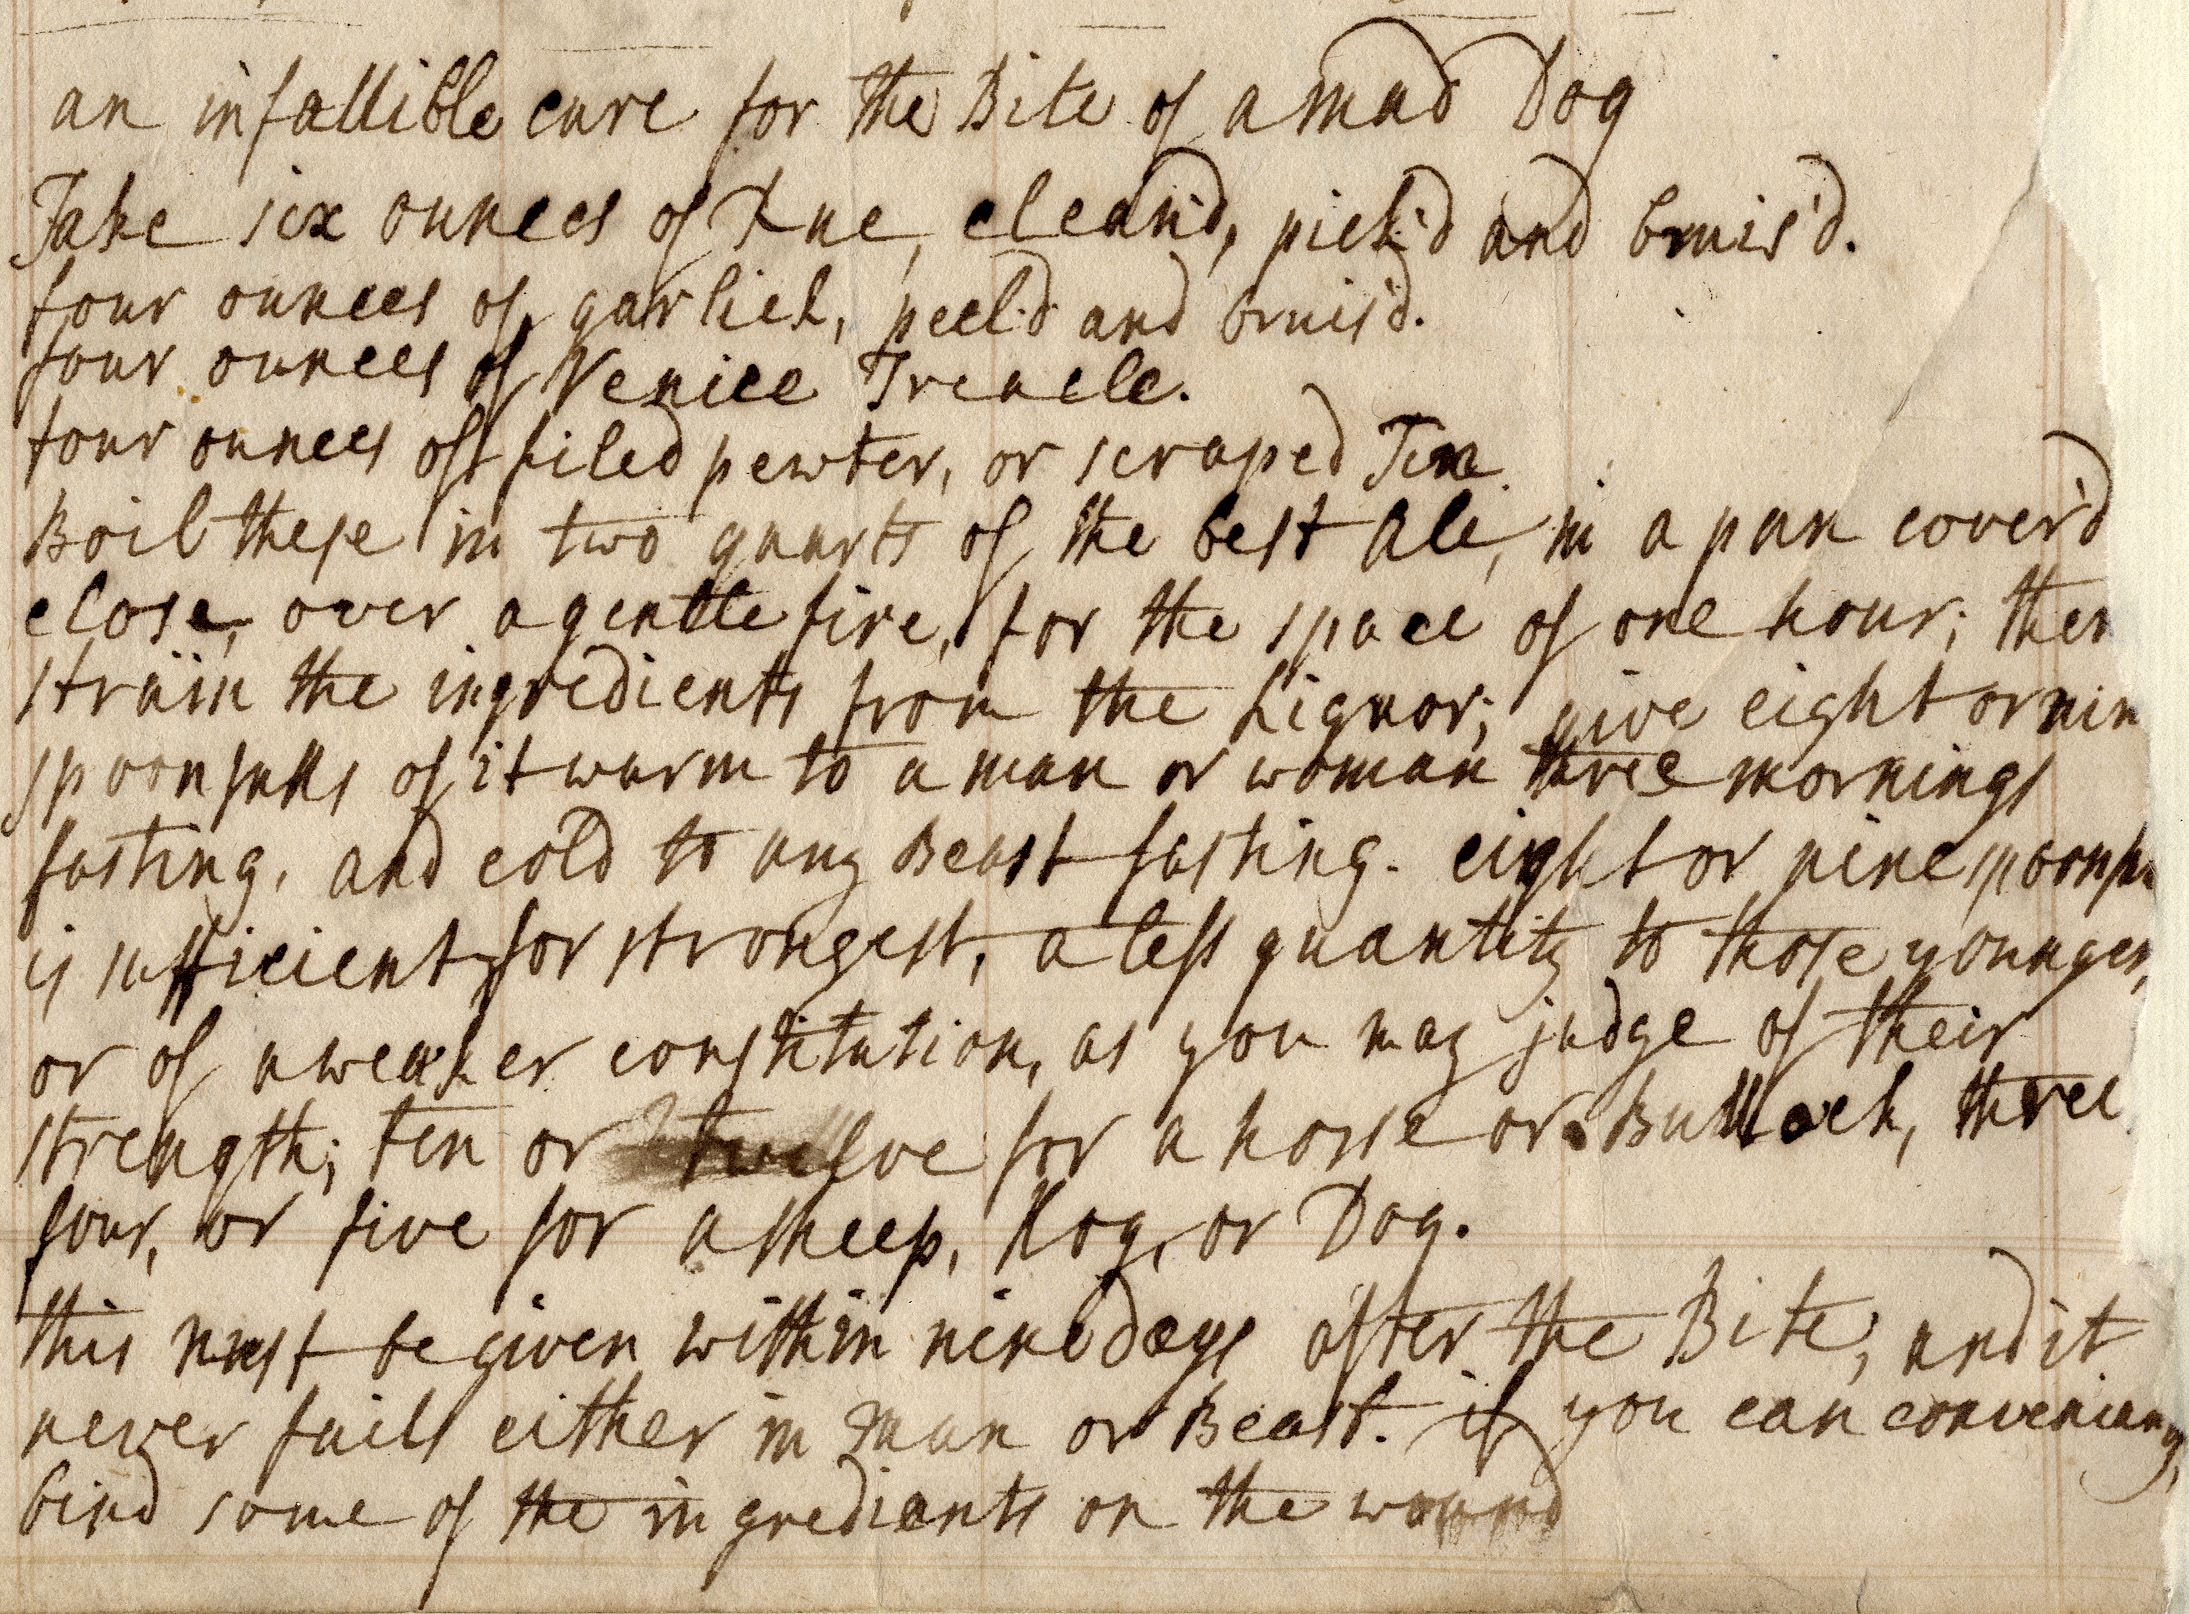 Scan of an old recipe for curing a dog bite